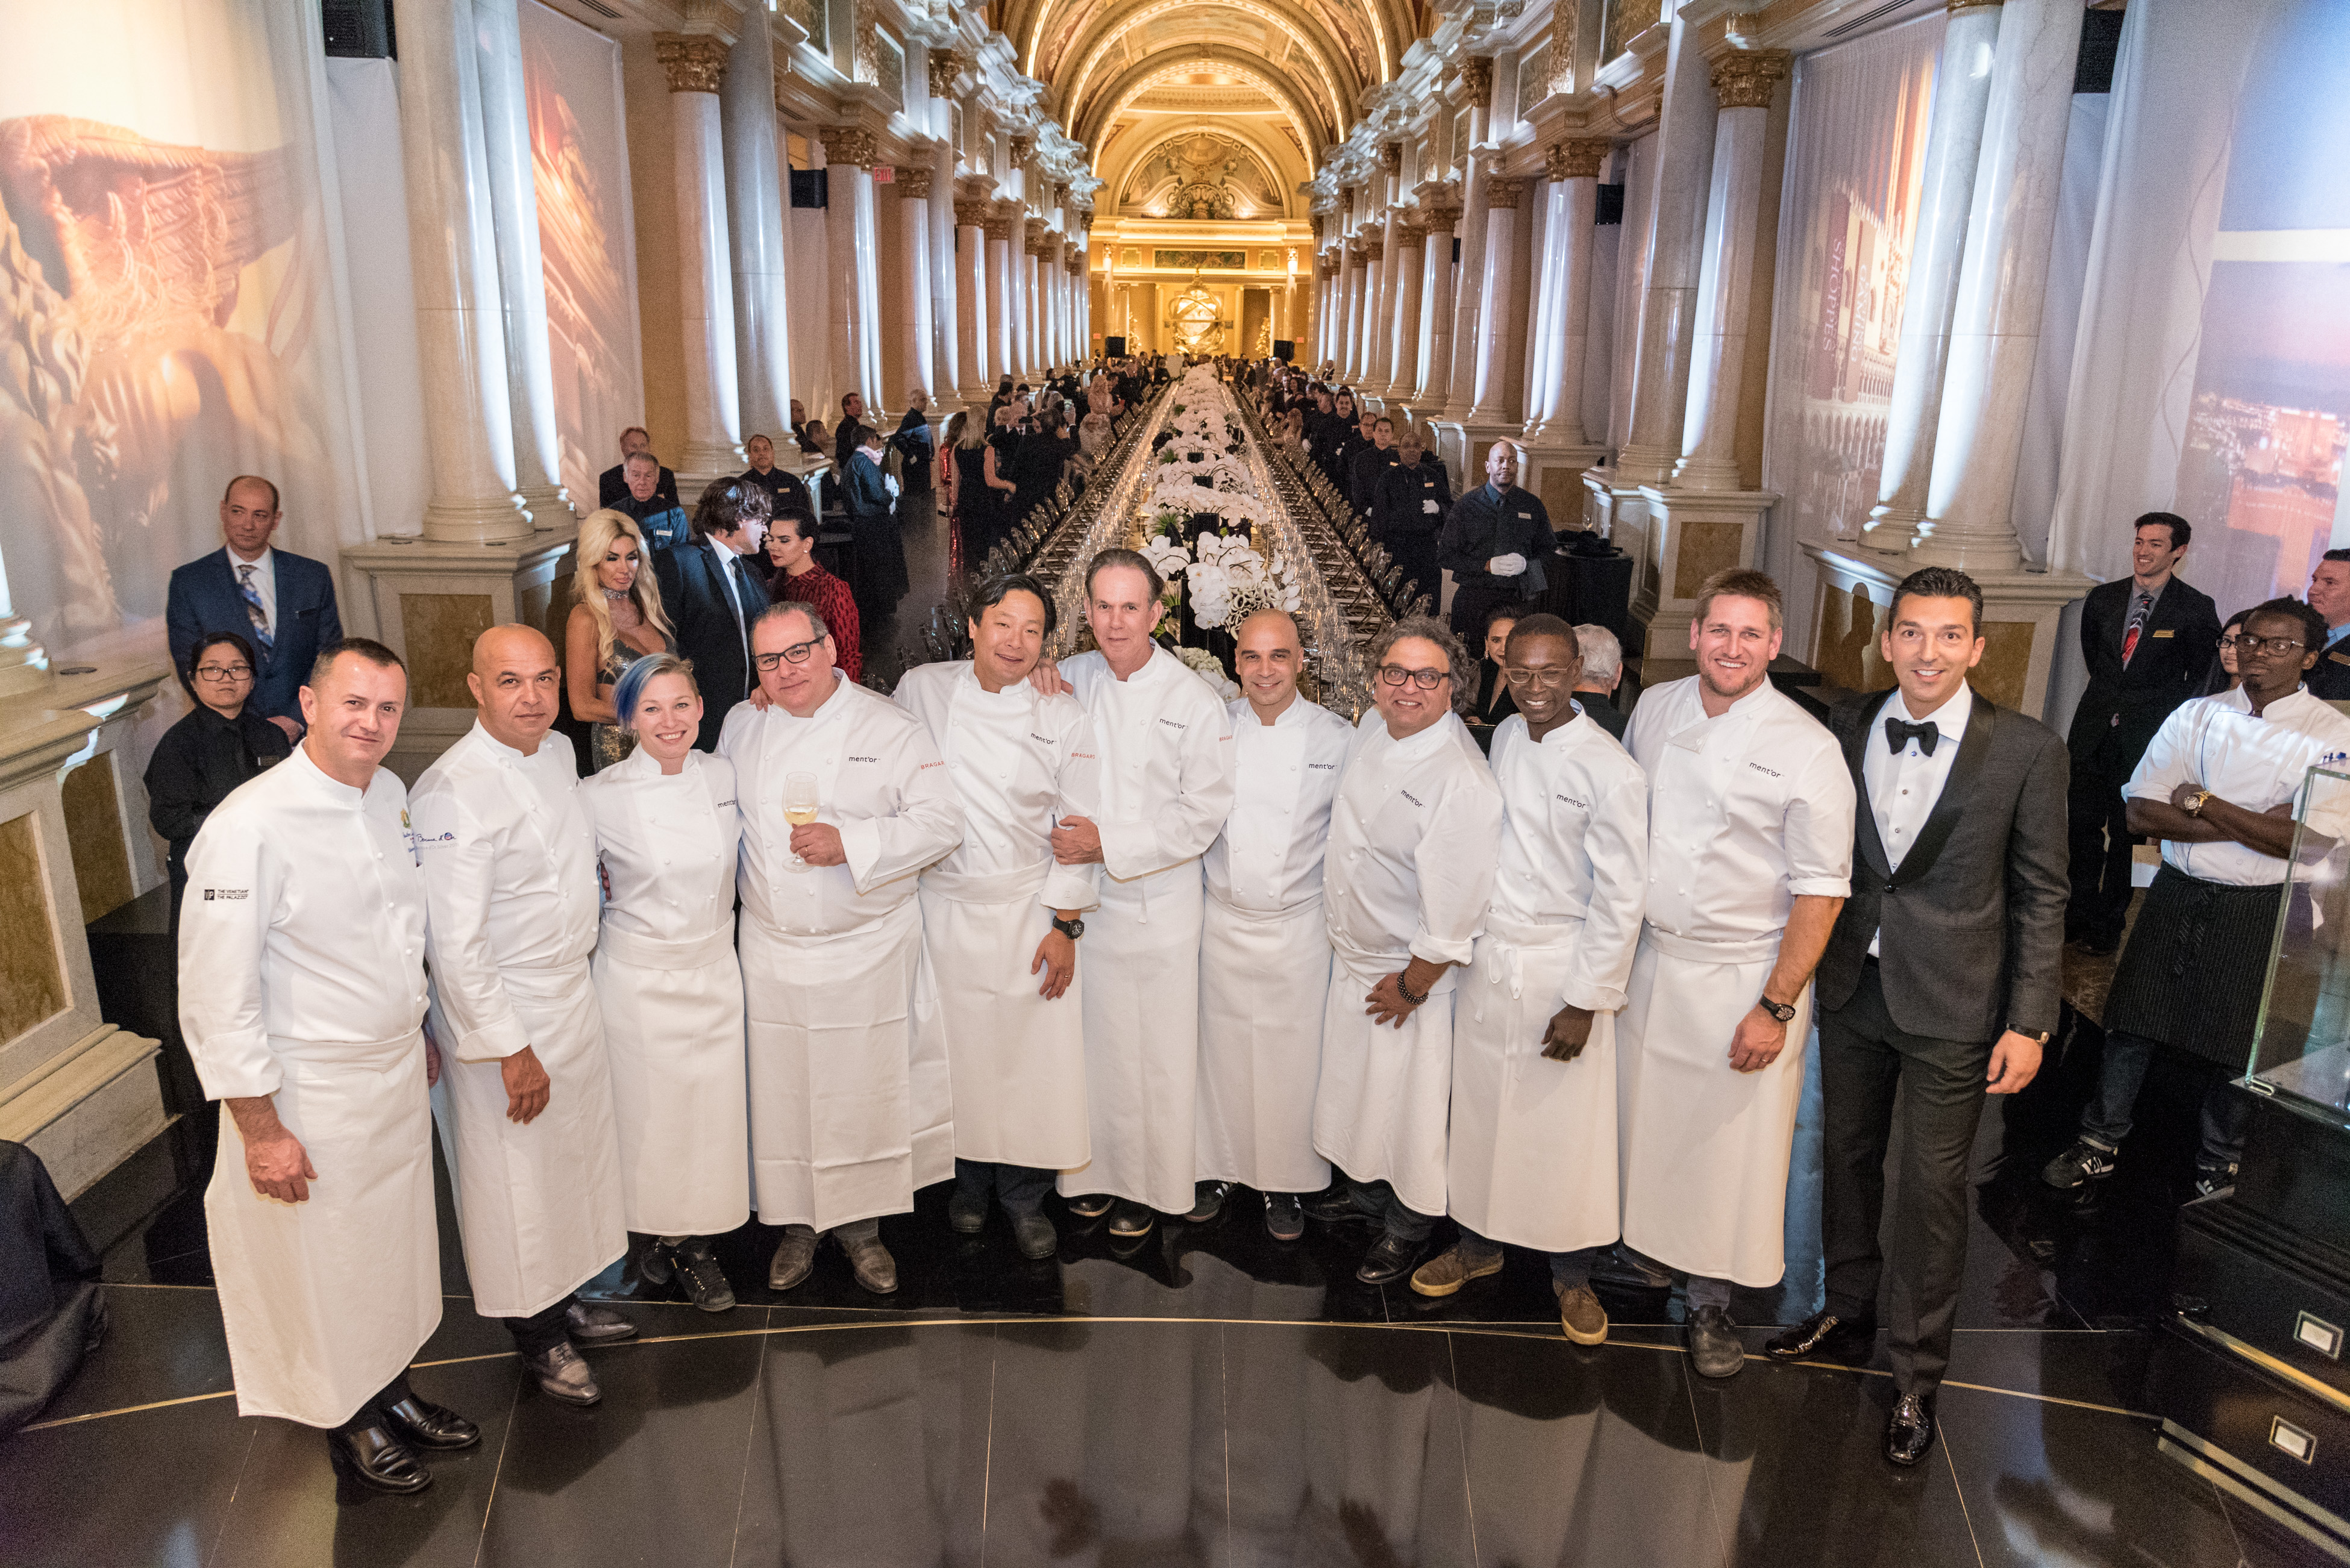 The star chefs of the evening alongside mastermind of the Ultimo experience, Sebastien Silvestre, at the Grand Banquet.